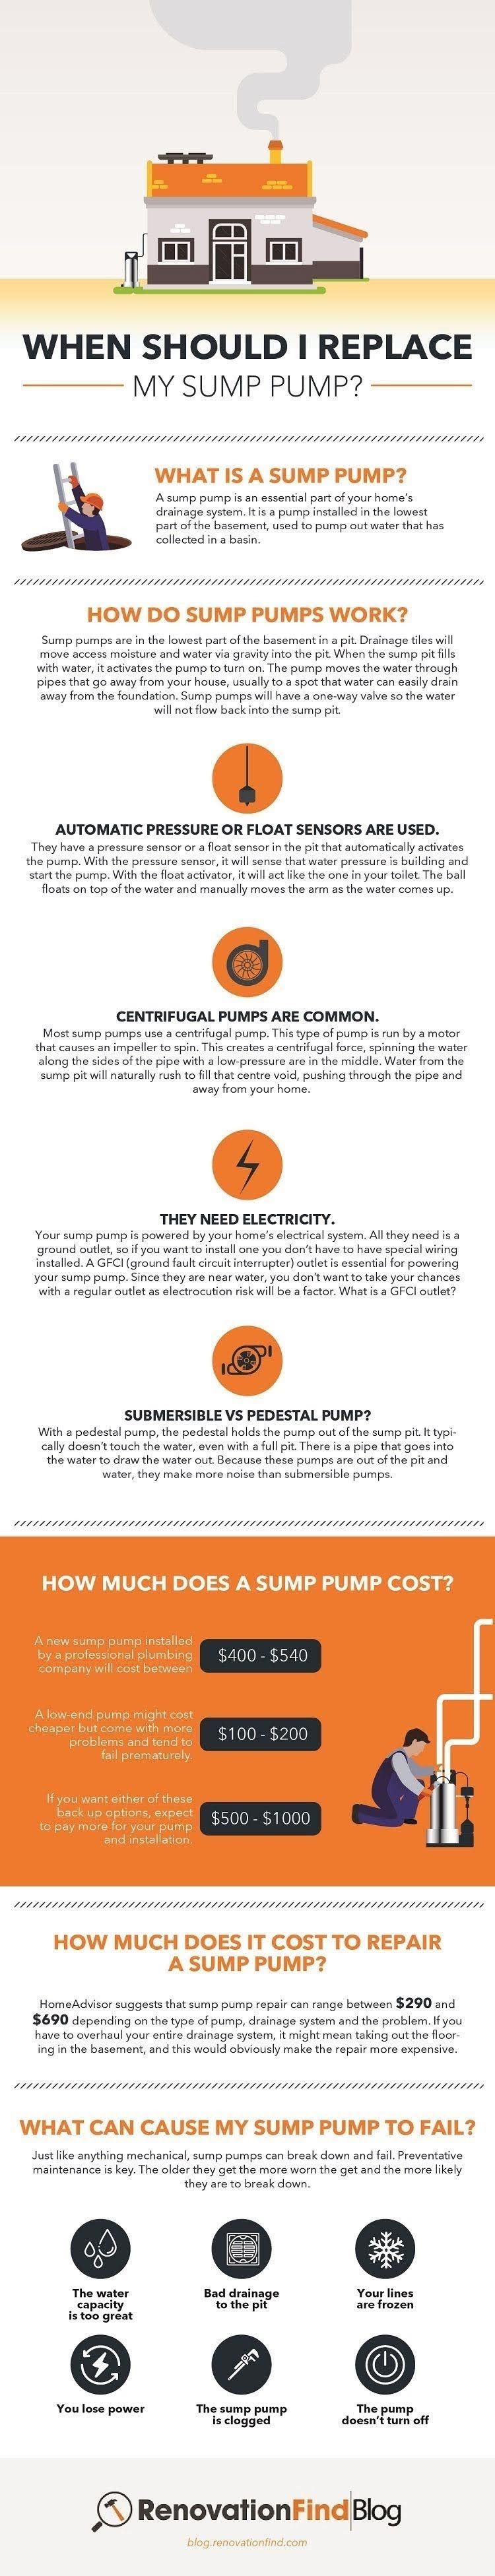 When Should I Replace My Sump Pump? #infographic